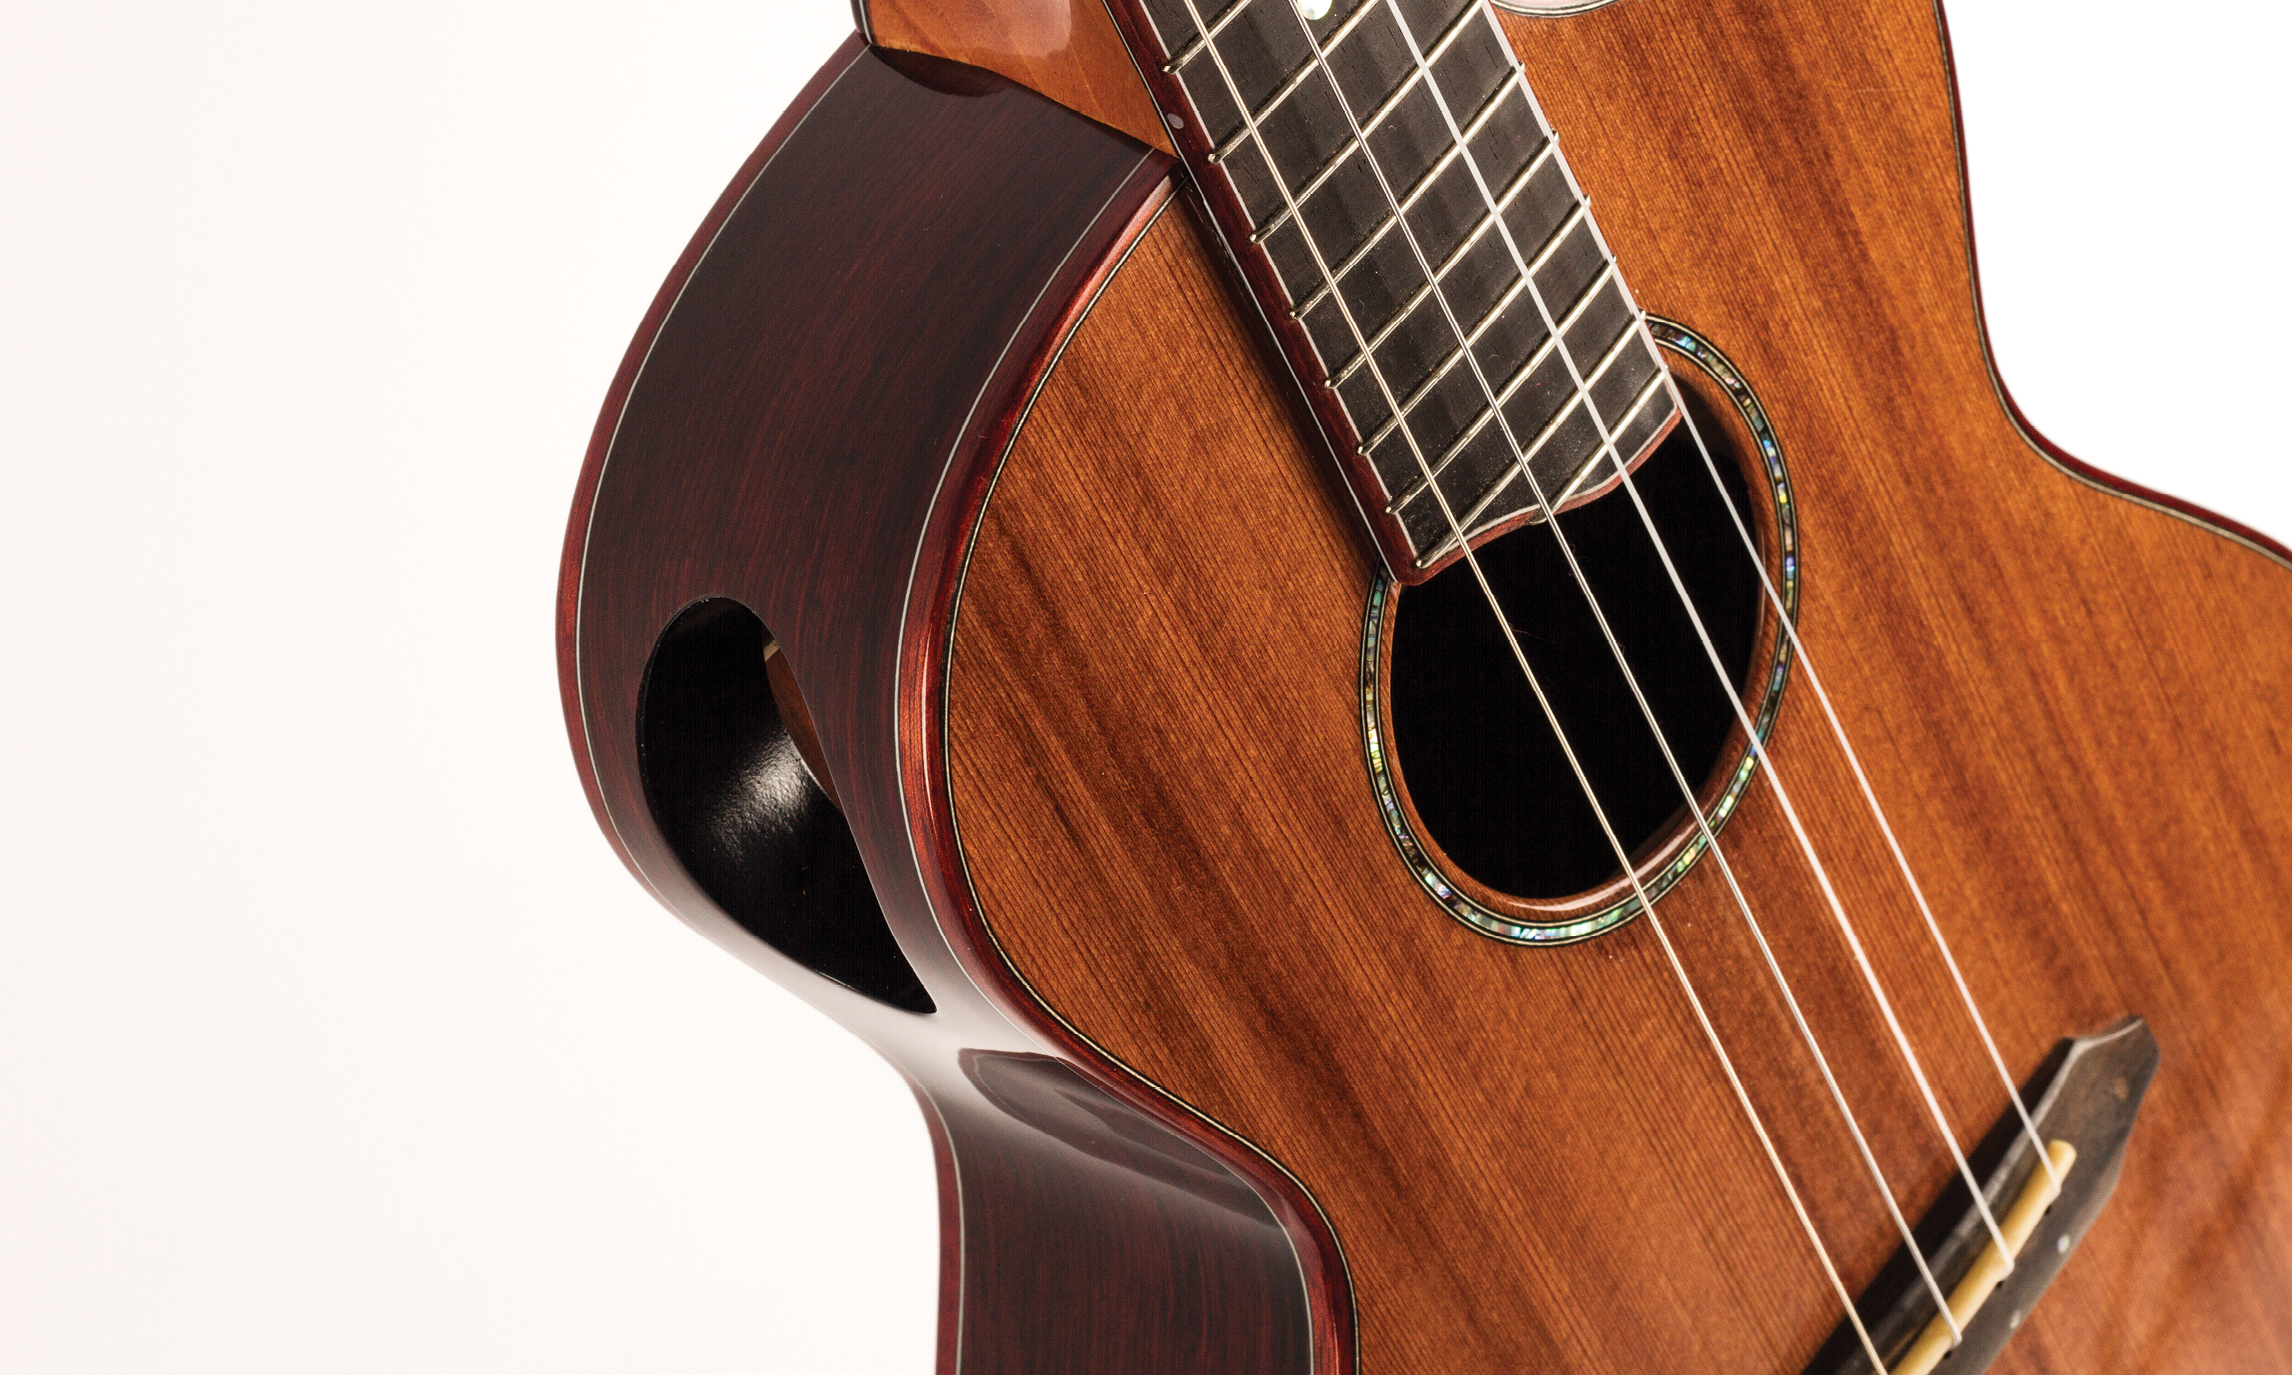 Ukulele Fret Wire Thickness Center Fretboard Diagram Gear Guru 5 Overlooked Features When Buying Your First Or Next Rh Ukulelemag Com G Chord Template